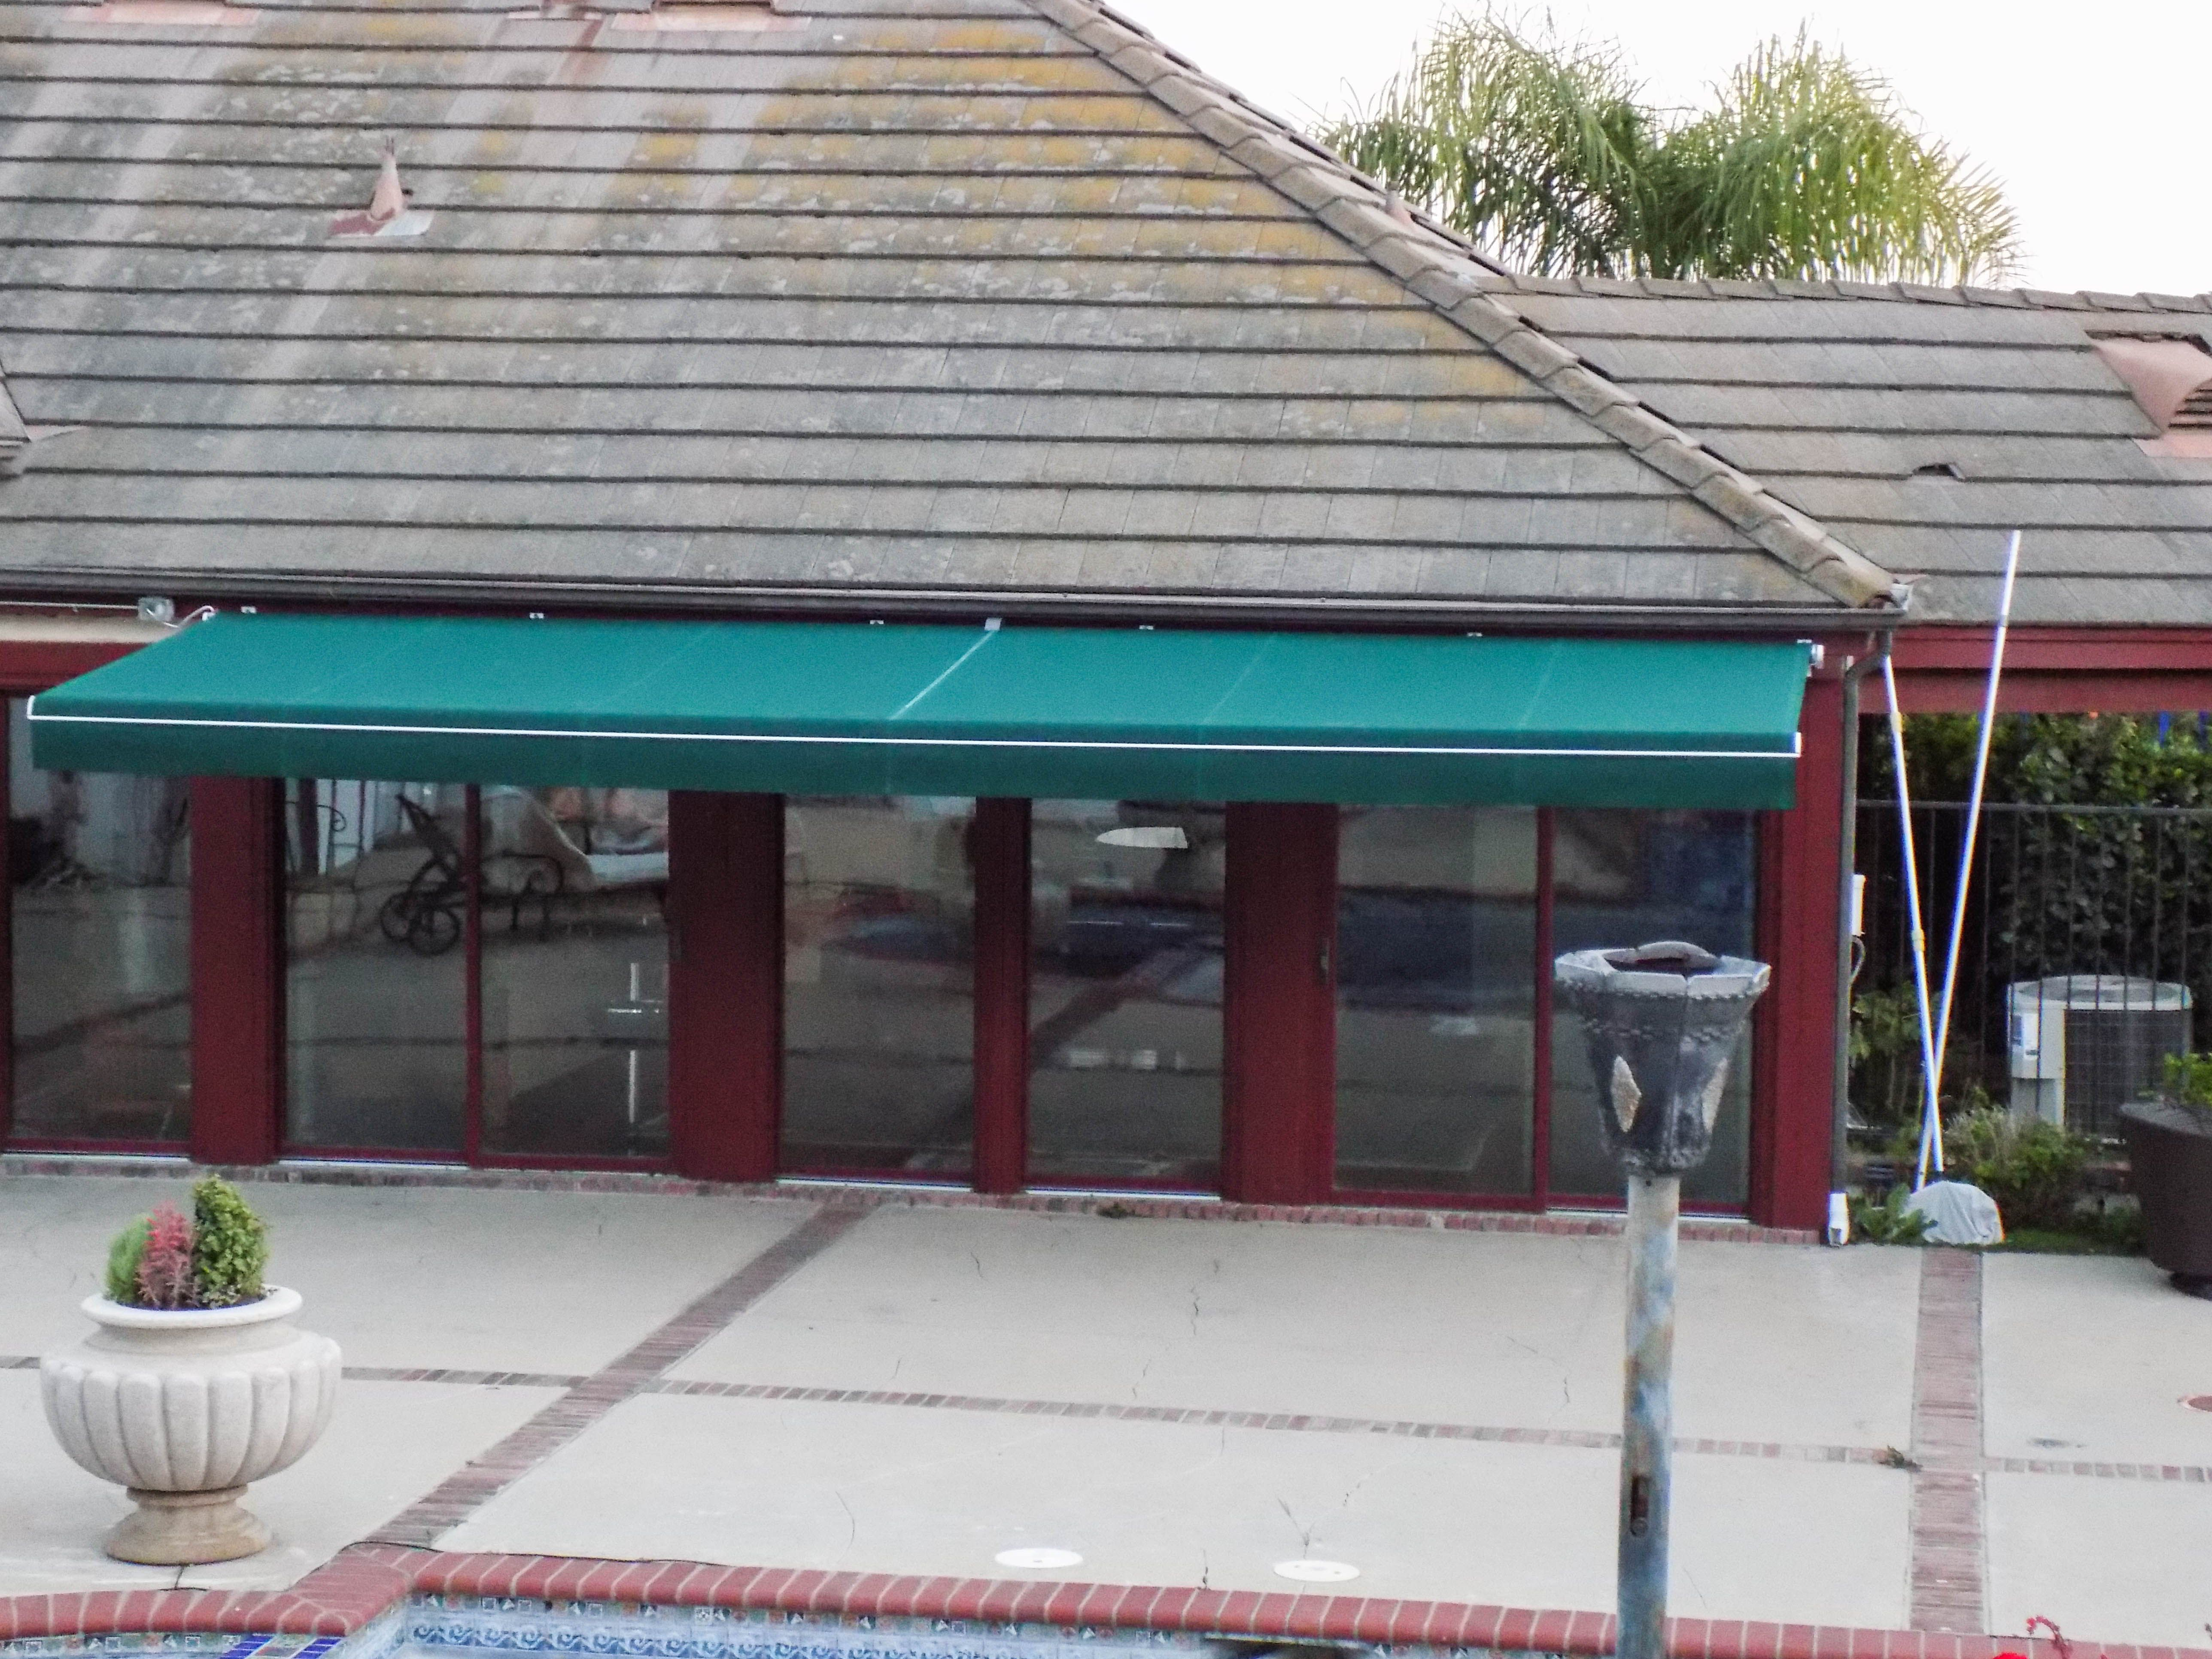 Another Retractable Awning Fabric Replacement If You Have An Existing Retractable Or Fixed Awning And The Fabric Is F Retractable Awning Wood Trellis Awning